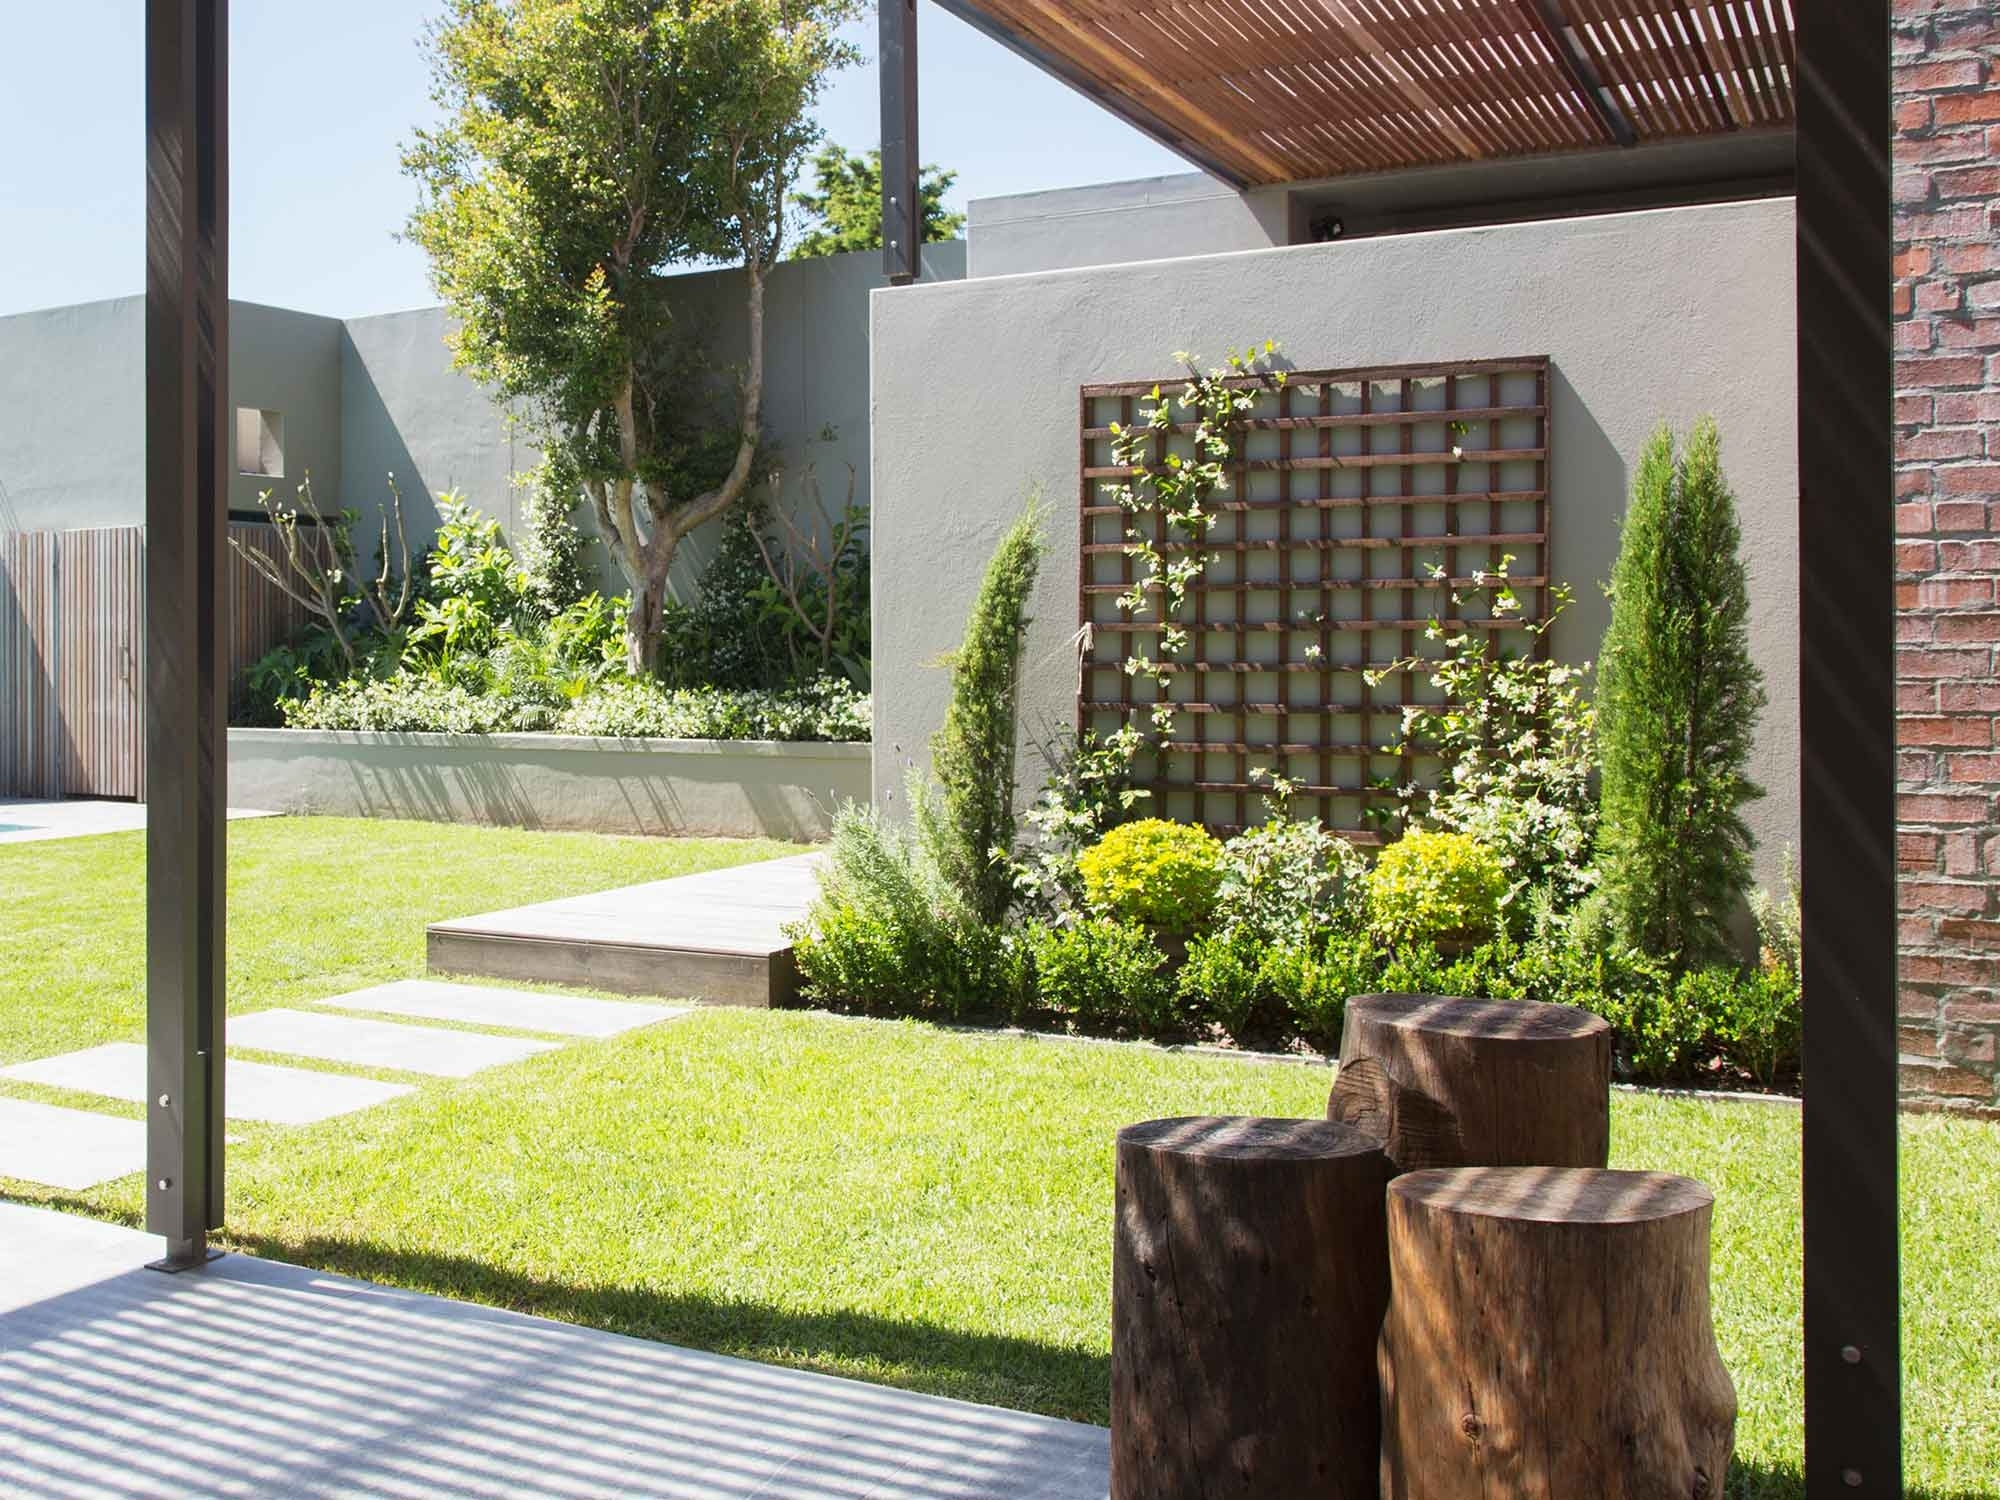 Garden Design Principles intended for Zen Garden Design Principles